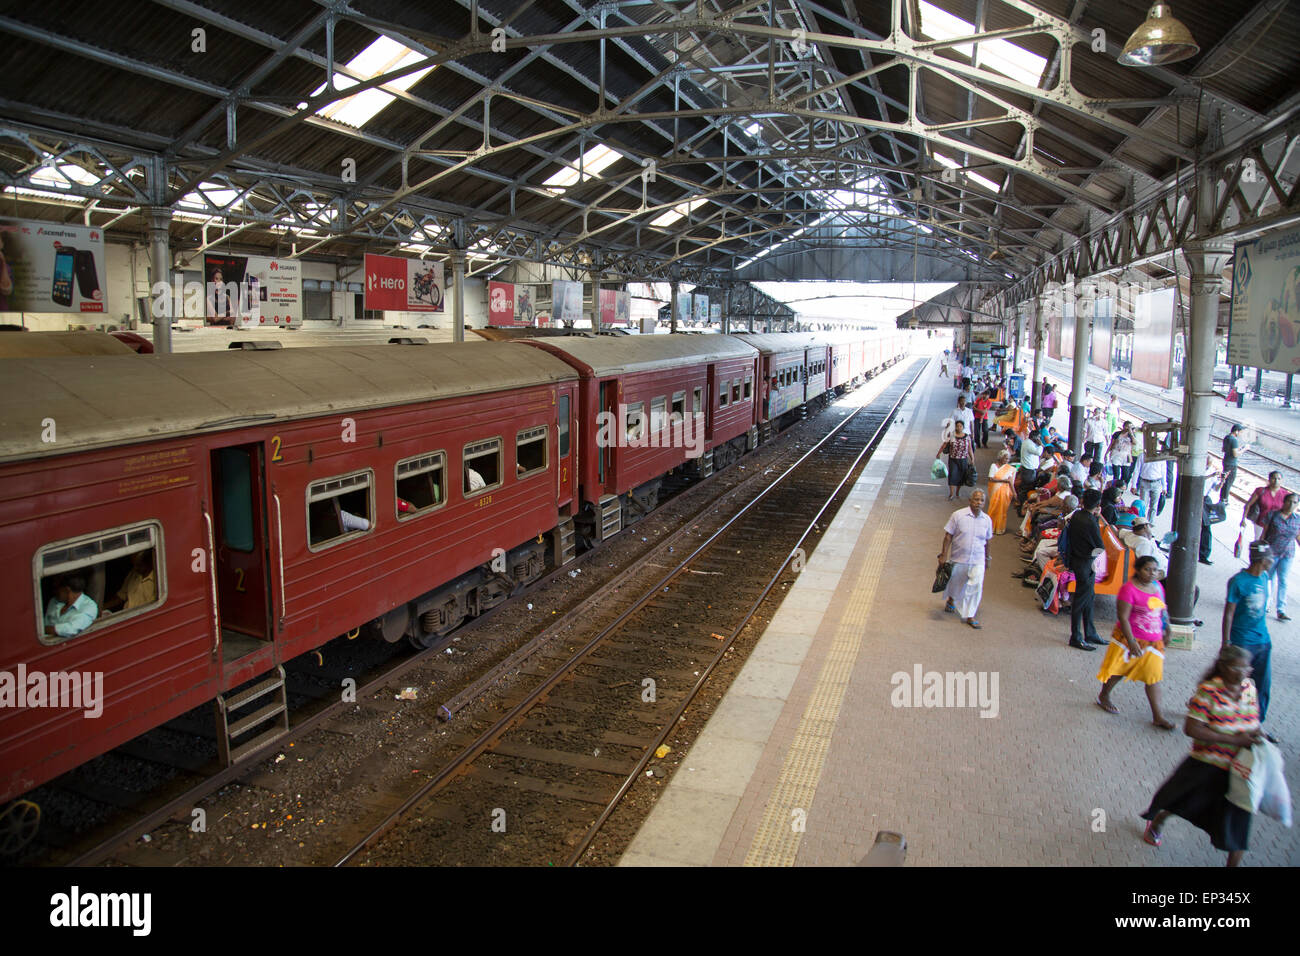 Train platform people inside Fort railway station, Colombo, Sri Lanka, Asia - Stock Image